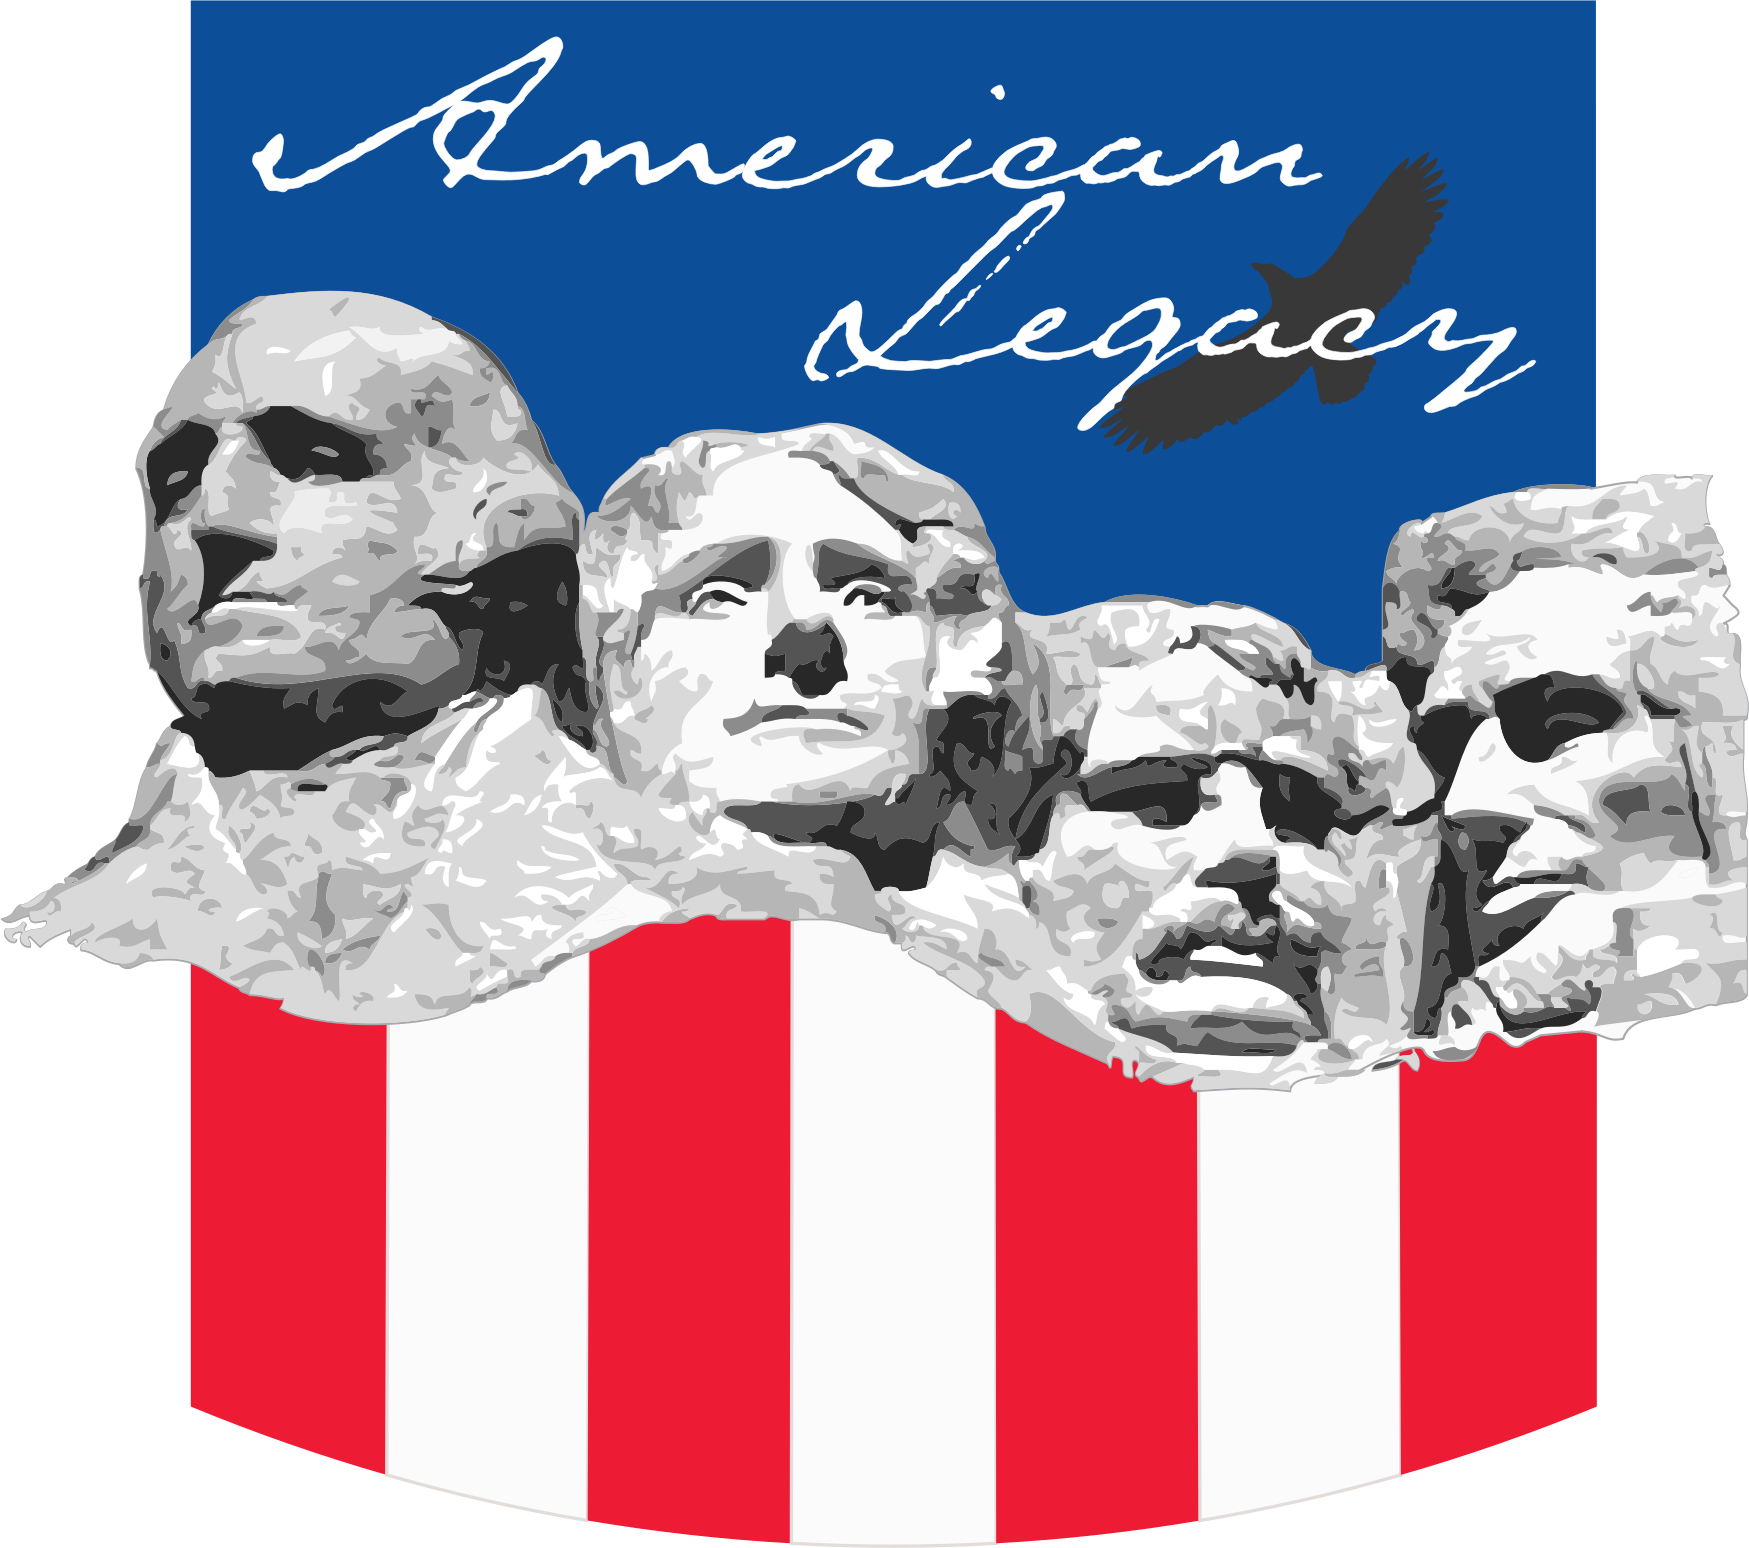 Mount rushmore clipart model. American legacy mt icons